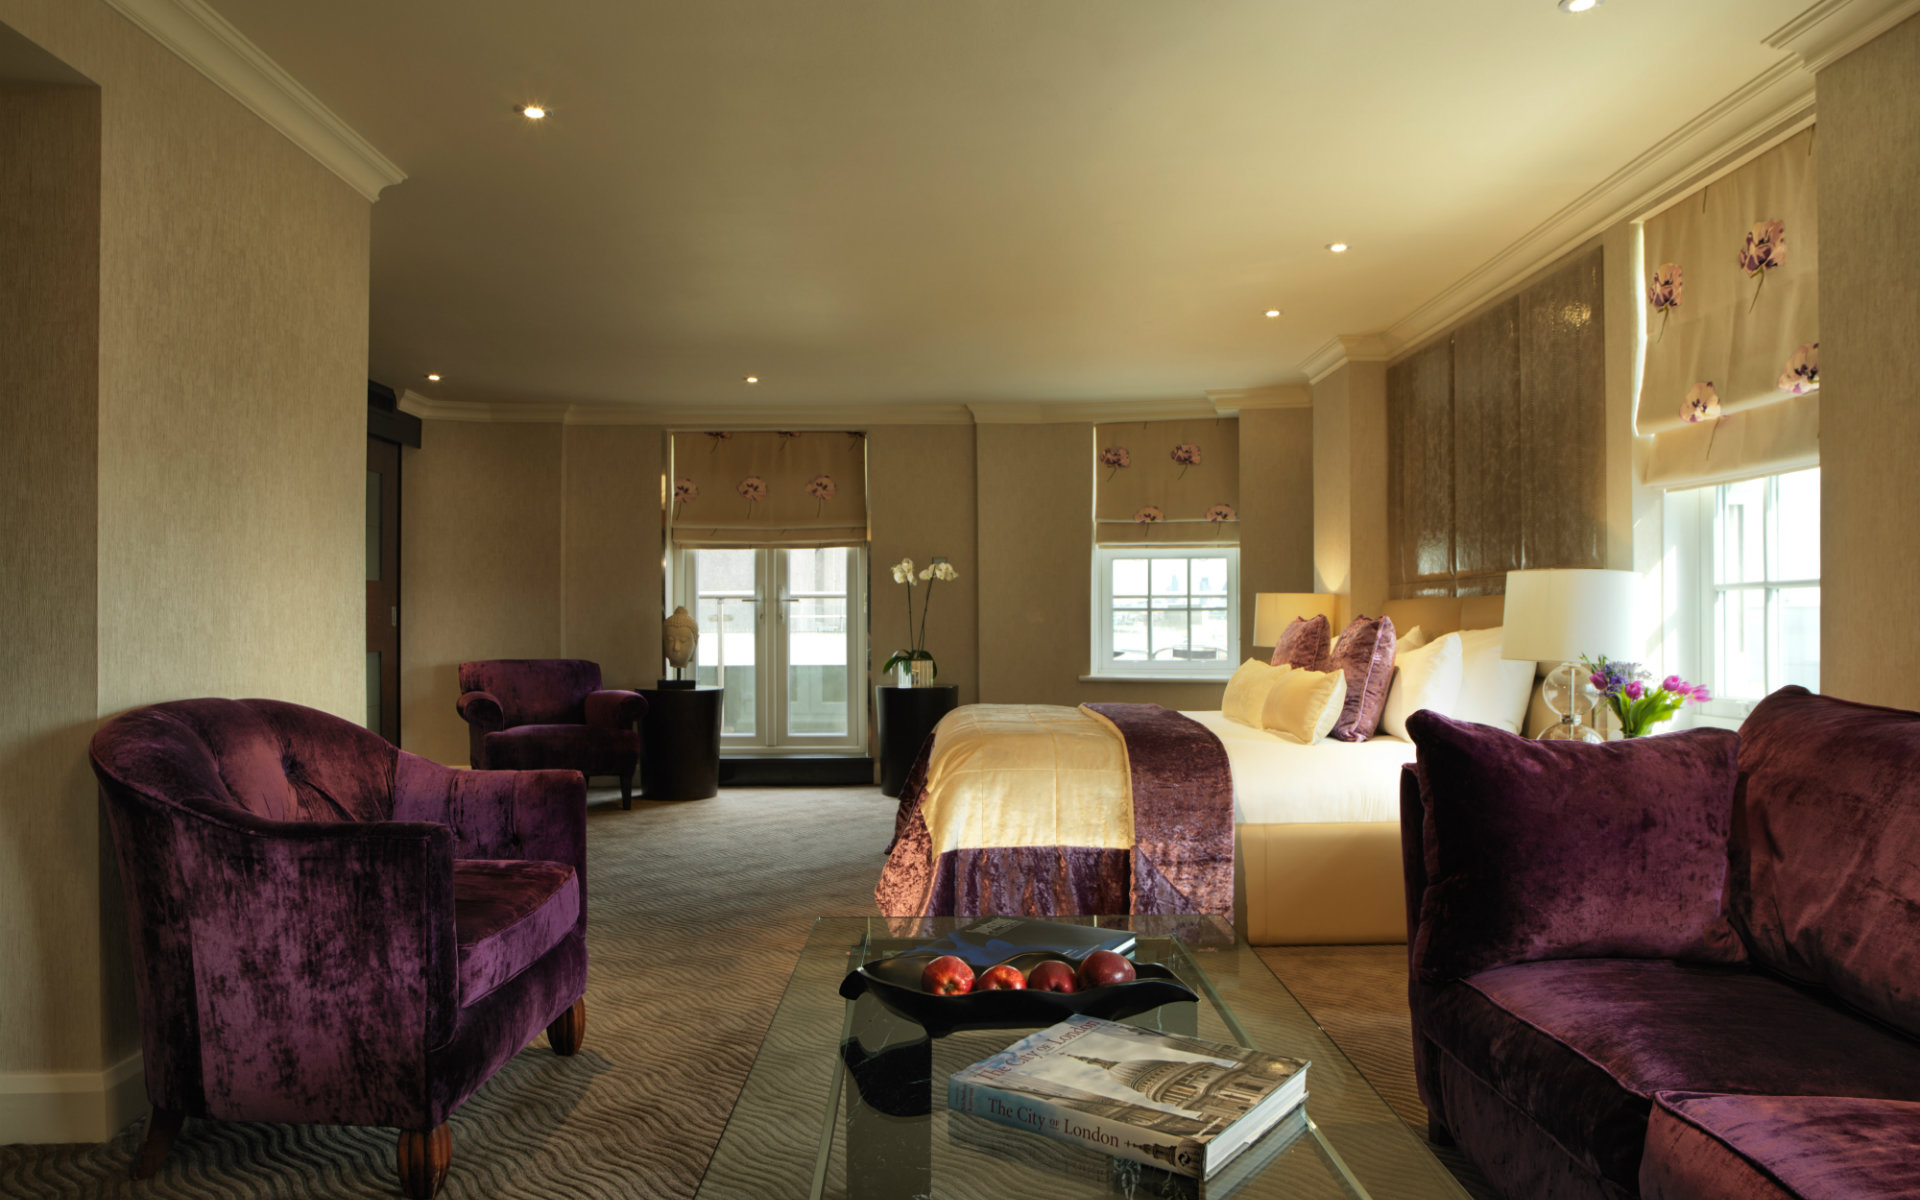 Radisson Blu Edwardian Berkshire 4 Star Hotel Near